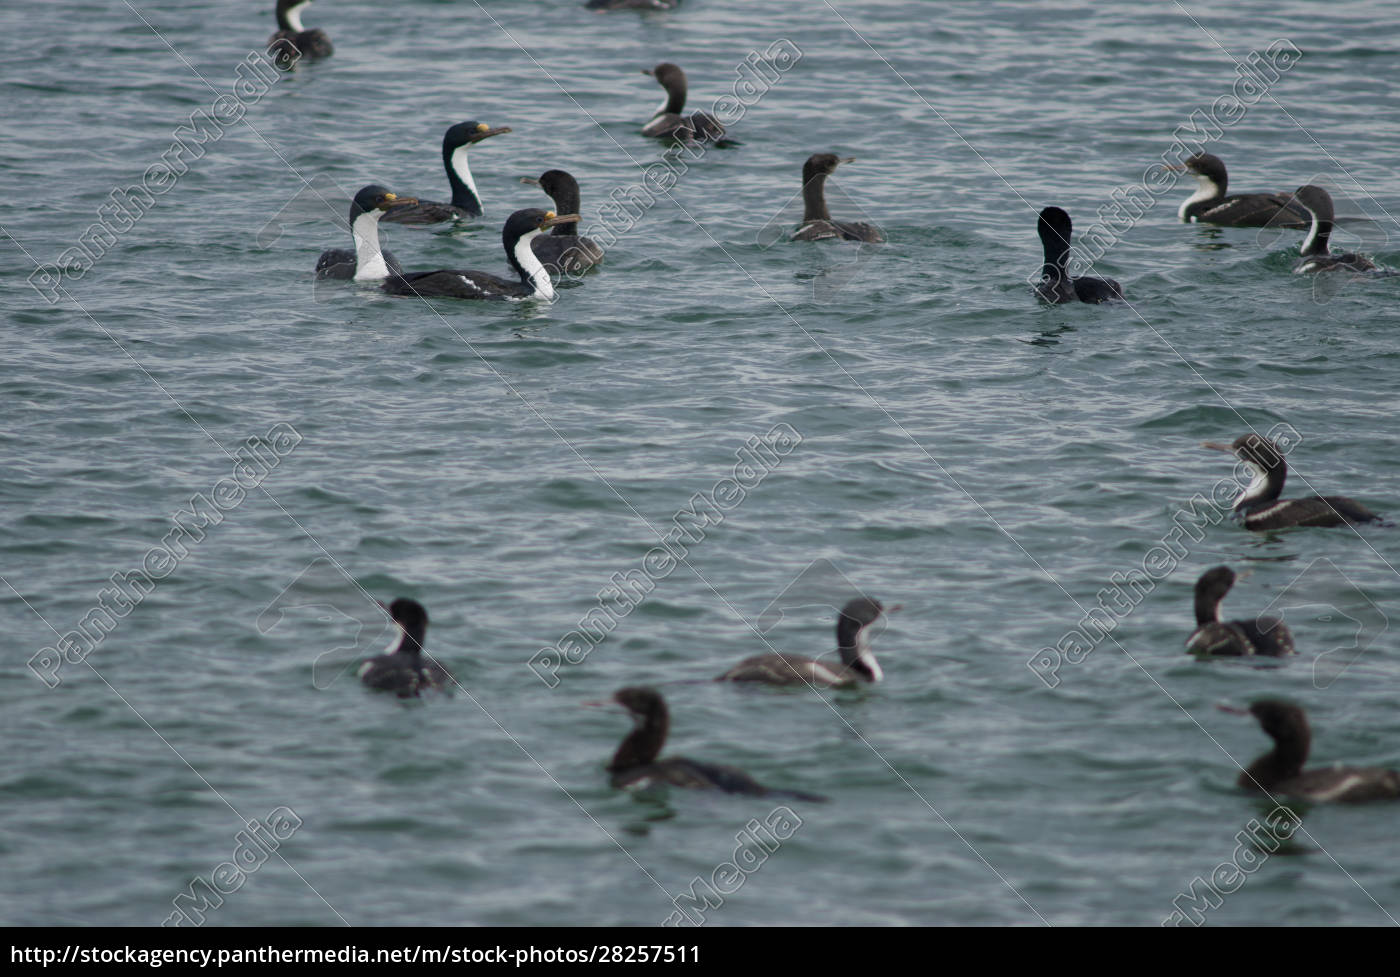 imperial, shags, in, the, coast, of - 28257511